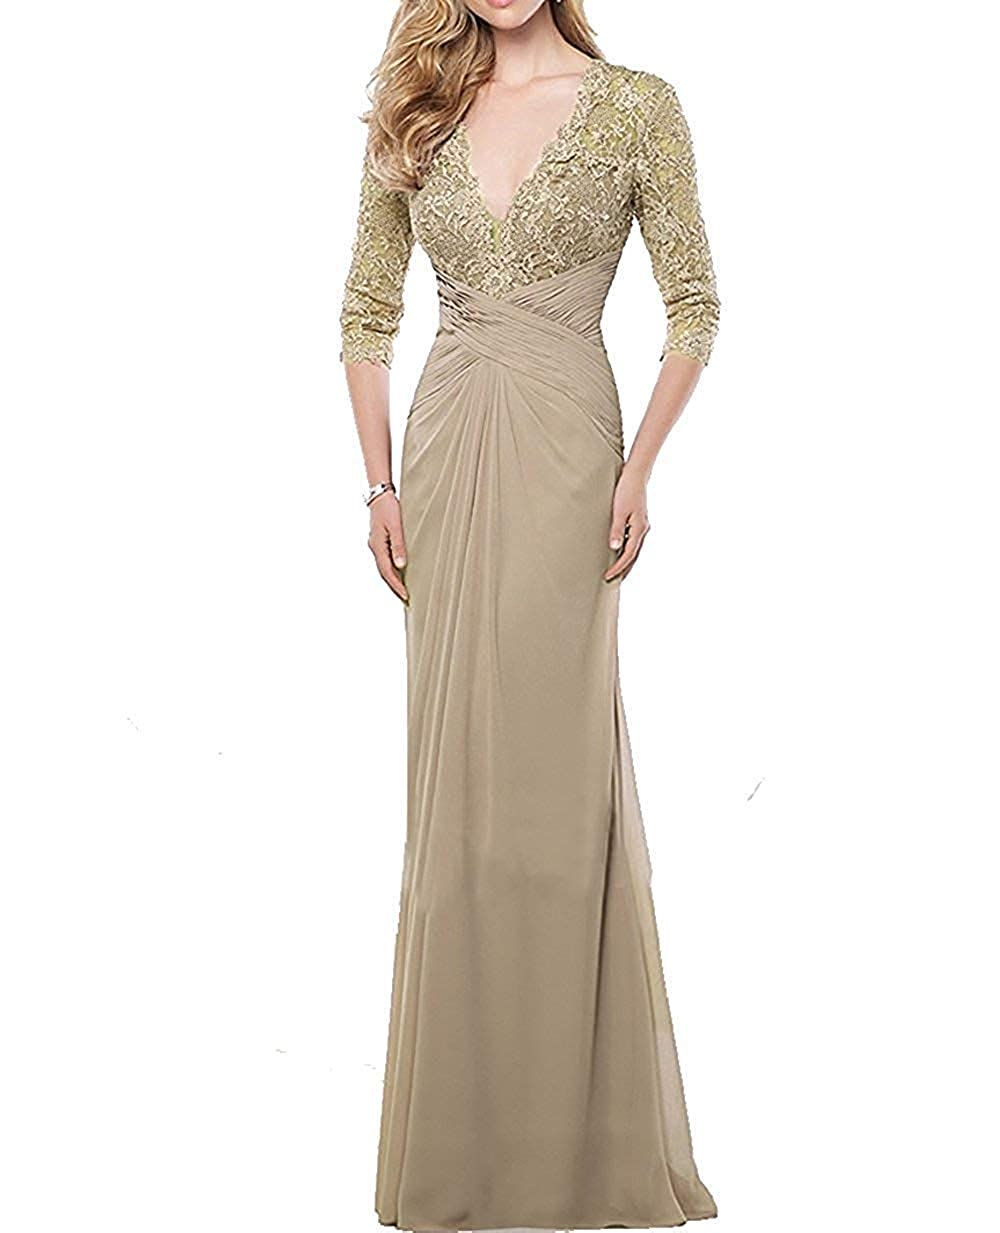 Champagne Mother of The Bride Dresses with Long Sleeves Mothers Bride Dress Formal Gowns Evening Dresses